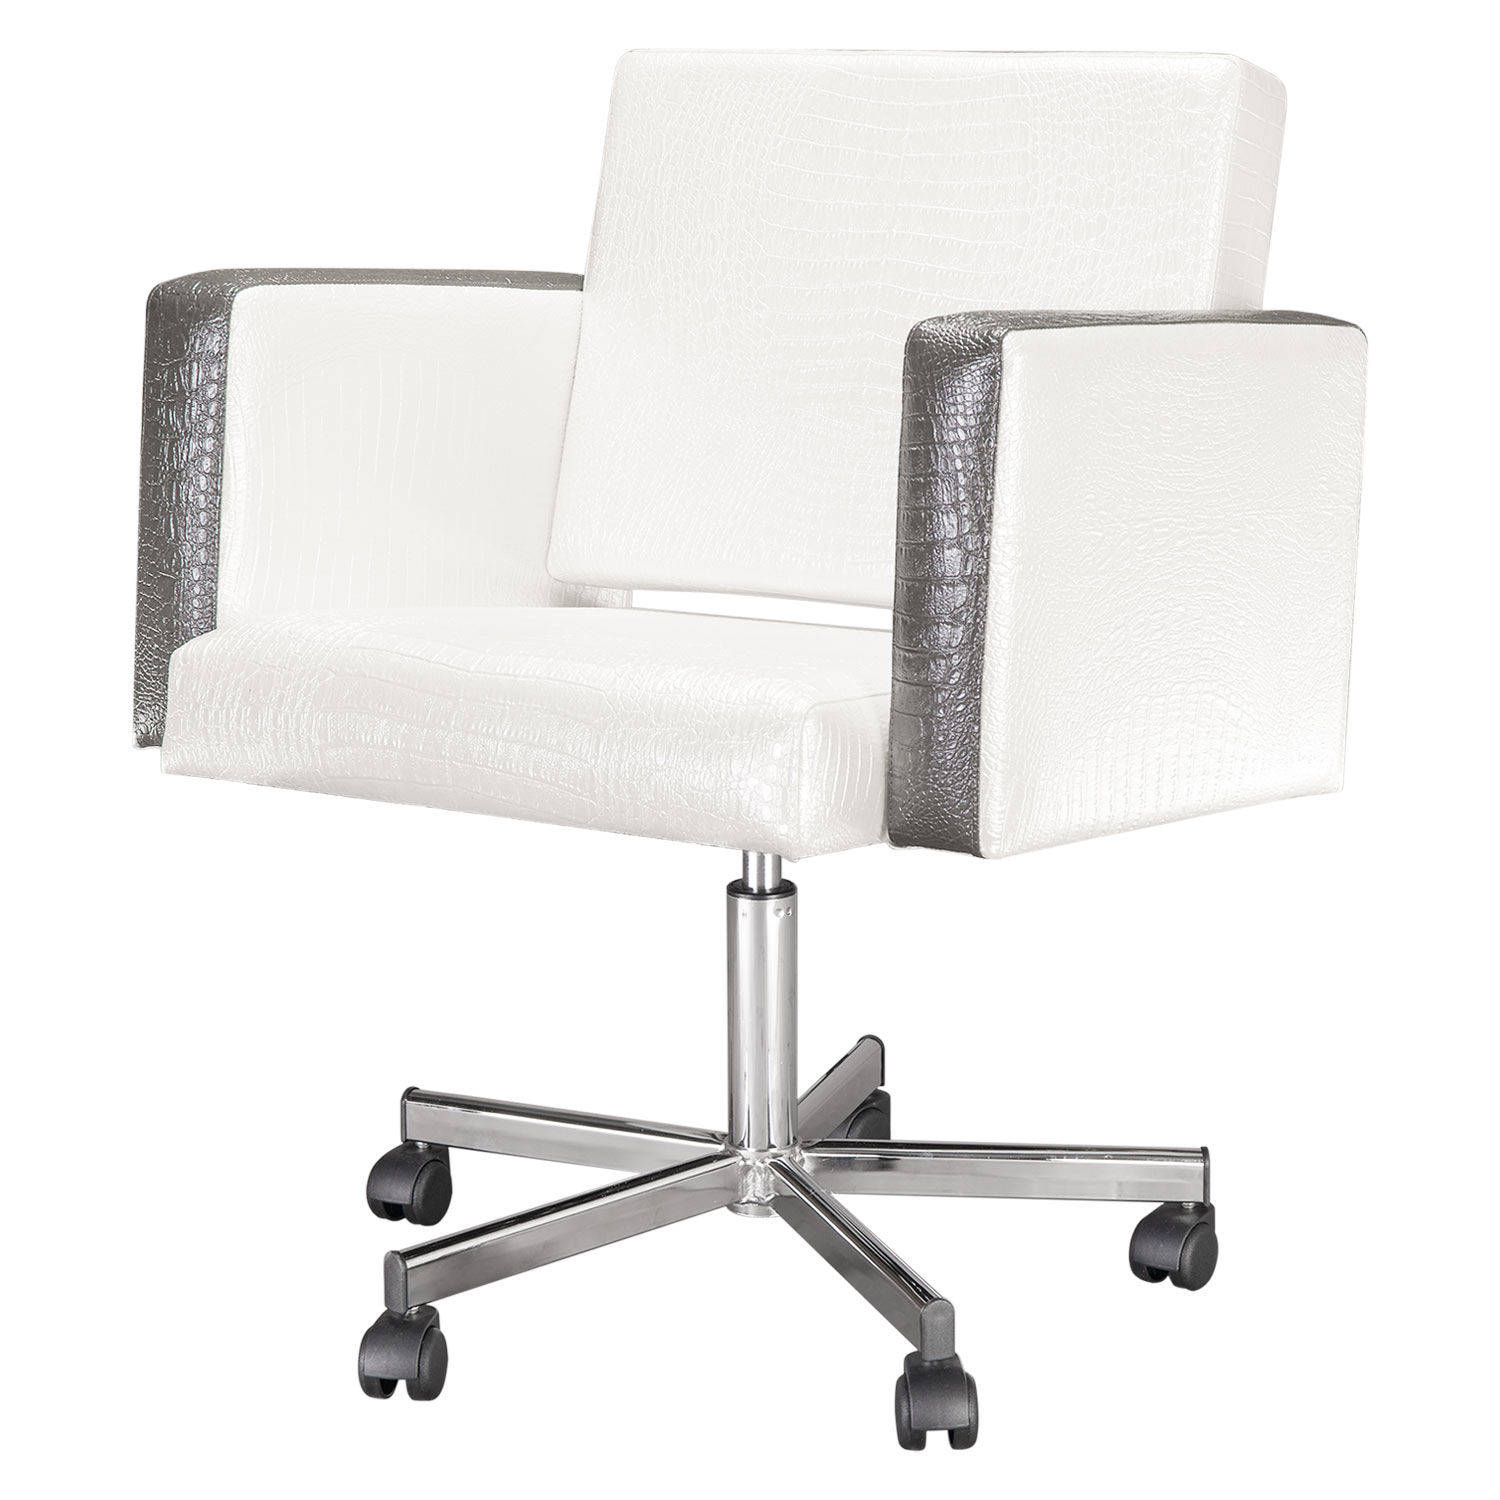 Pibbs 3492 Cosmo Client Chair  main product image